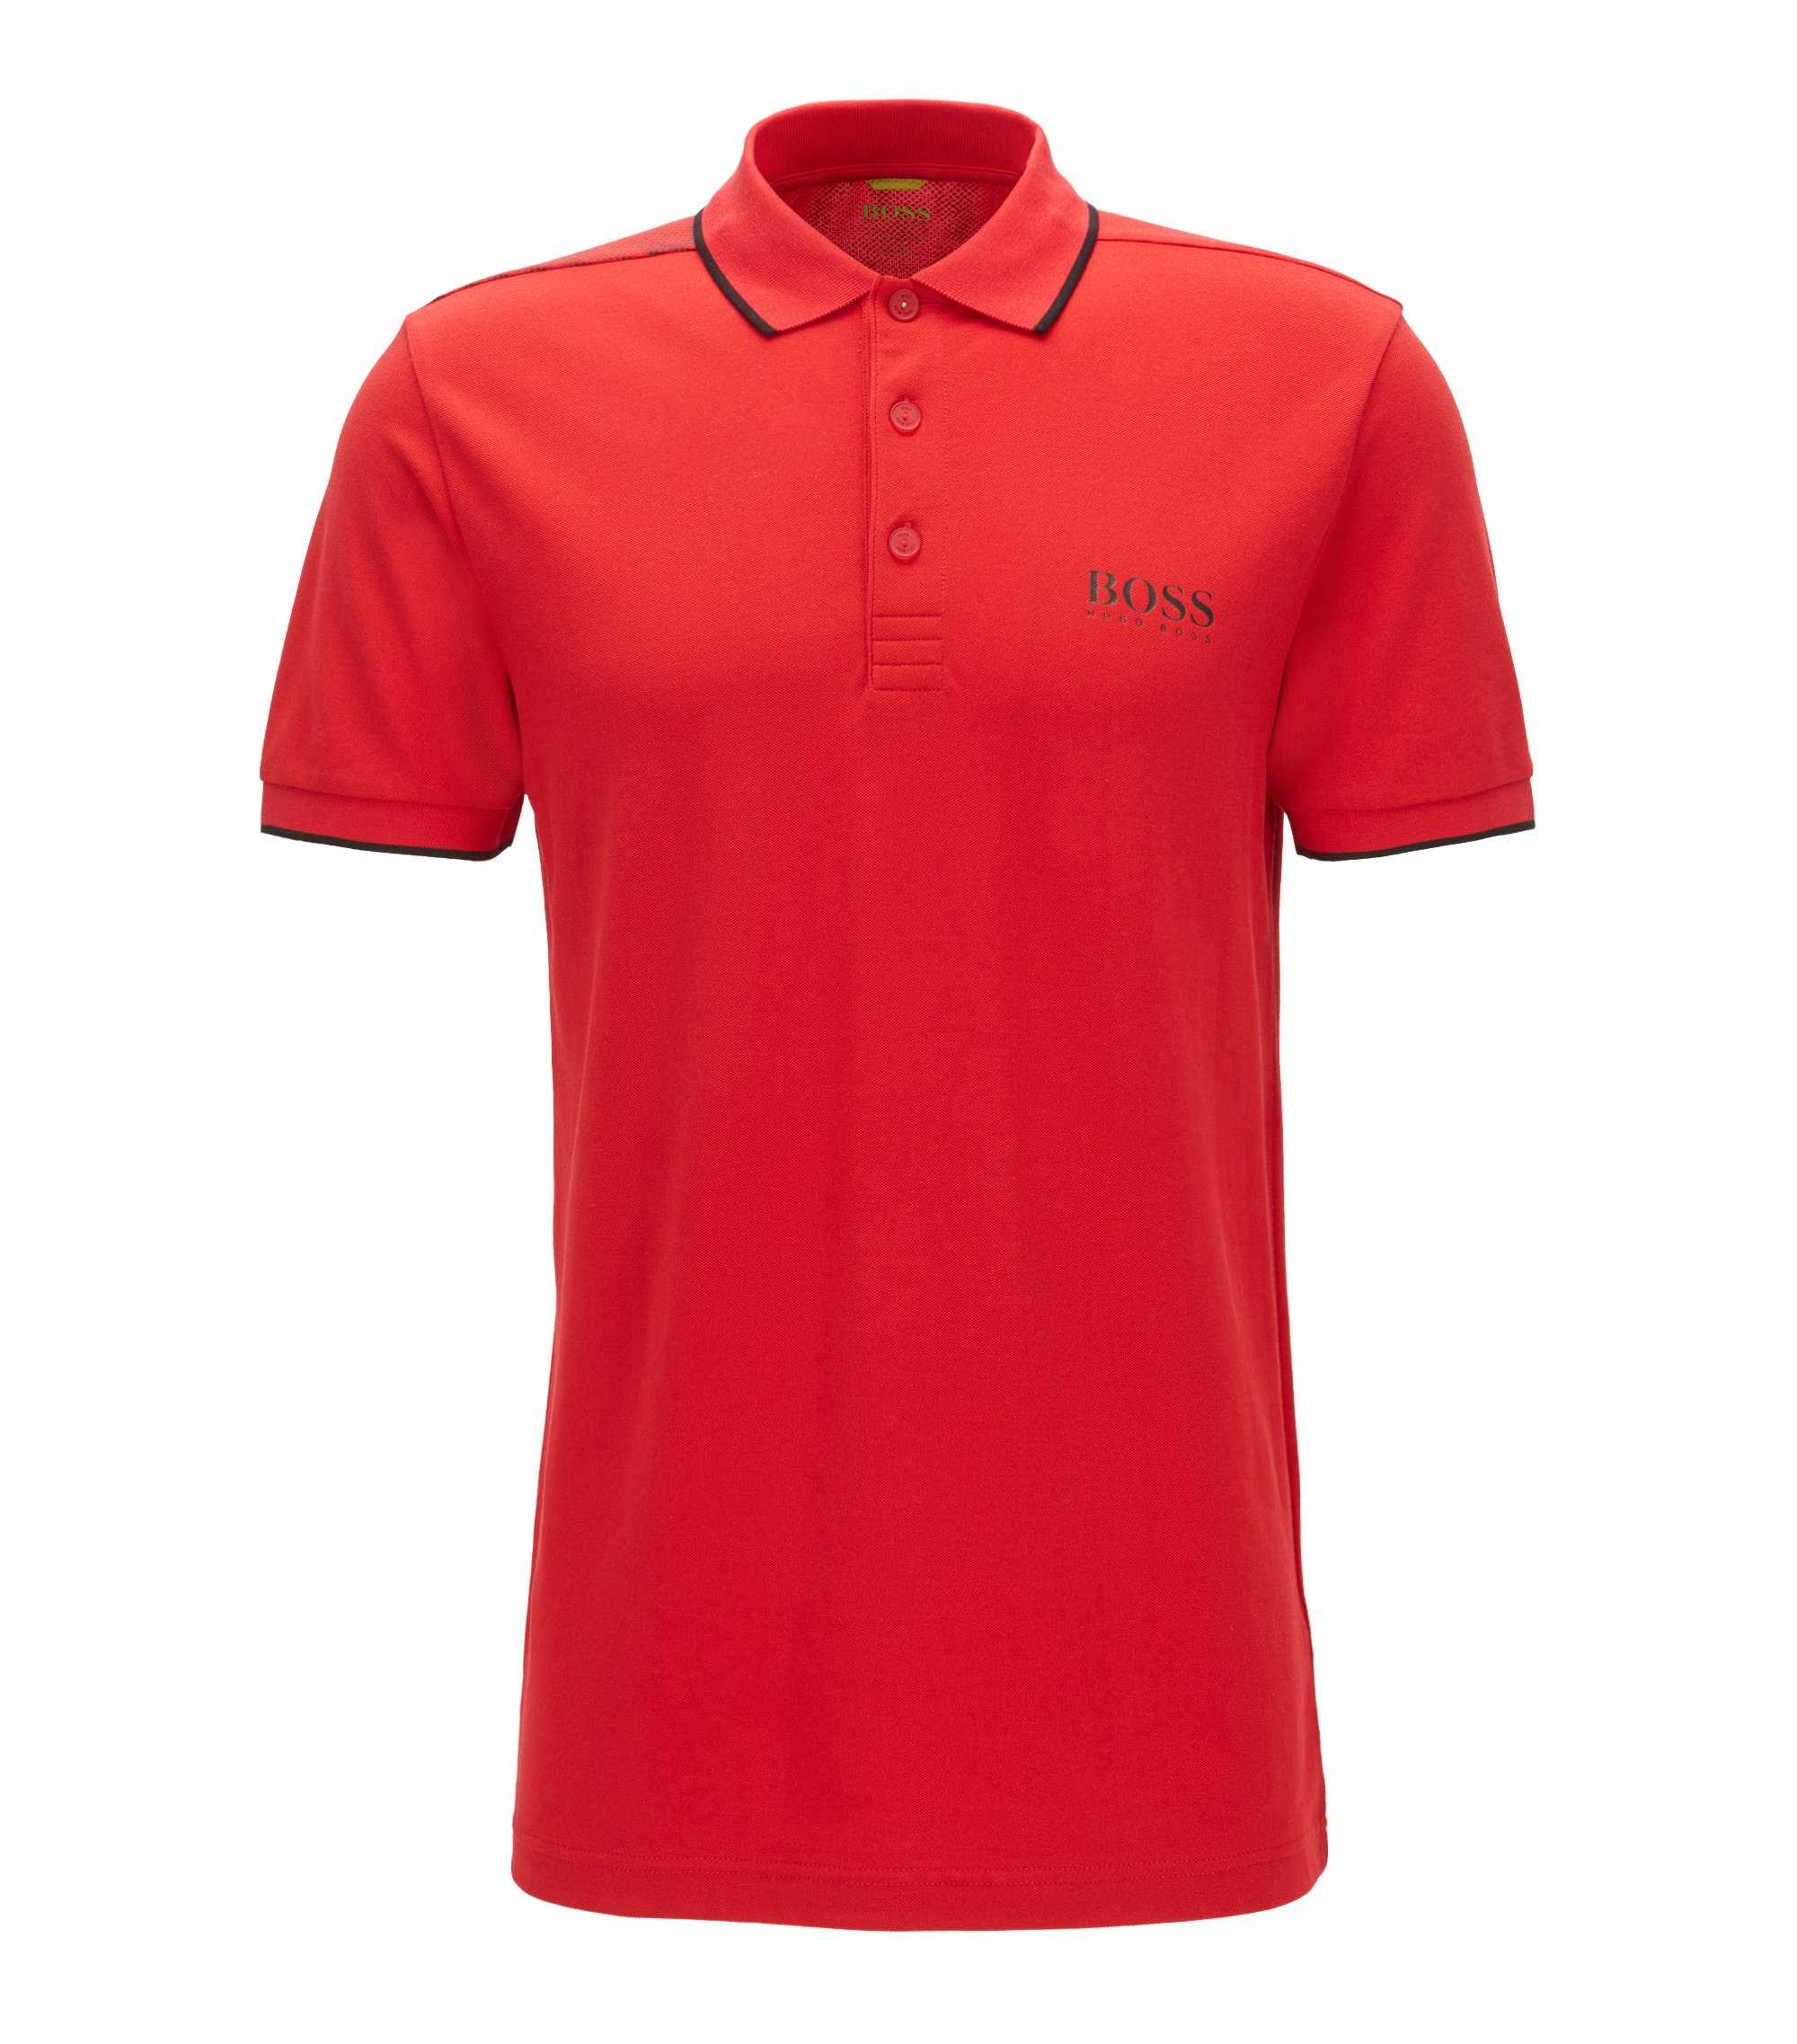 Tipped Cotton Blend  Polo Shirt, Slim Fit | Paul Pro, Red